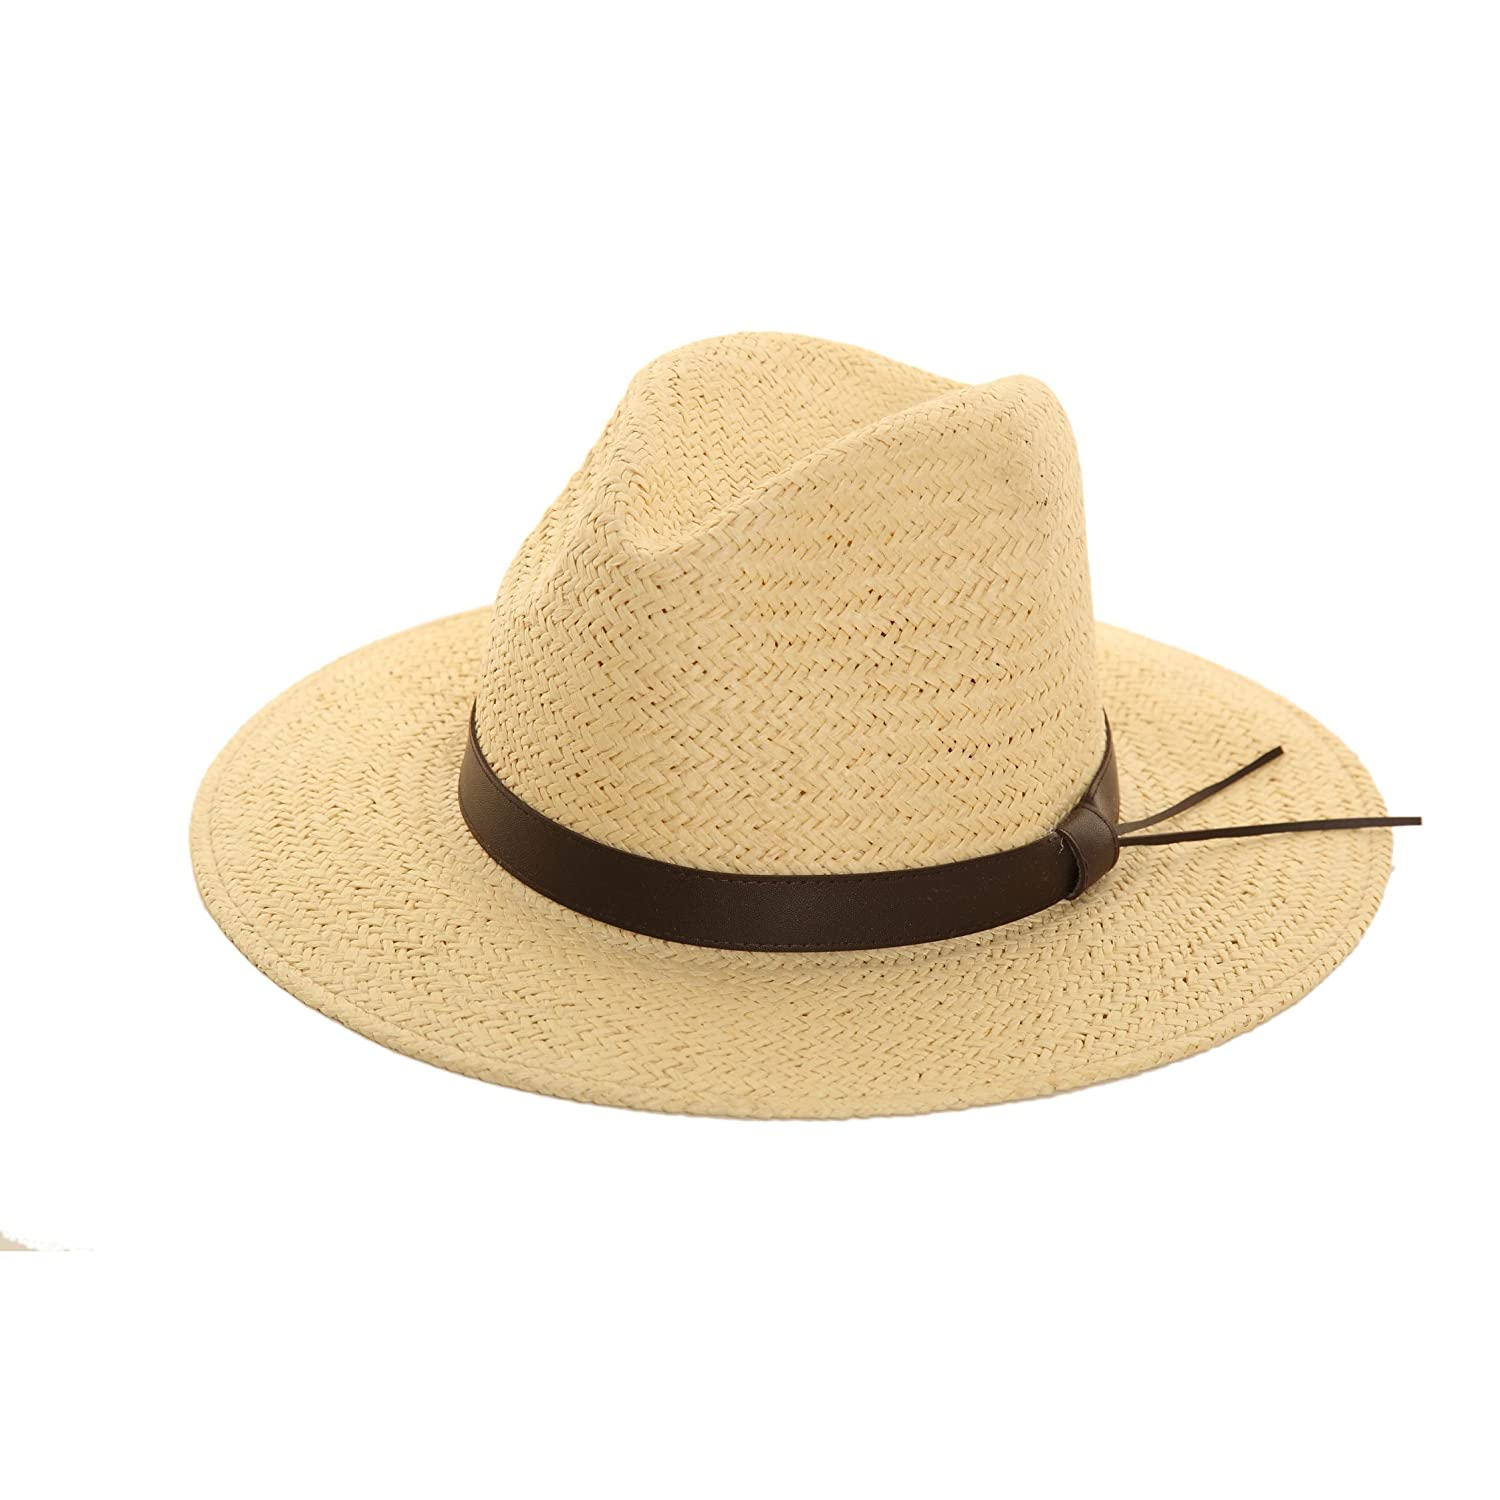 STRAW CRUSHABLE FOLDABLE PACKABLE SUMMER FEDORA, PANAMA TRILBY HAT WITH BROWN FAUX LEATHER BAND